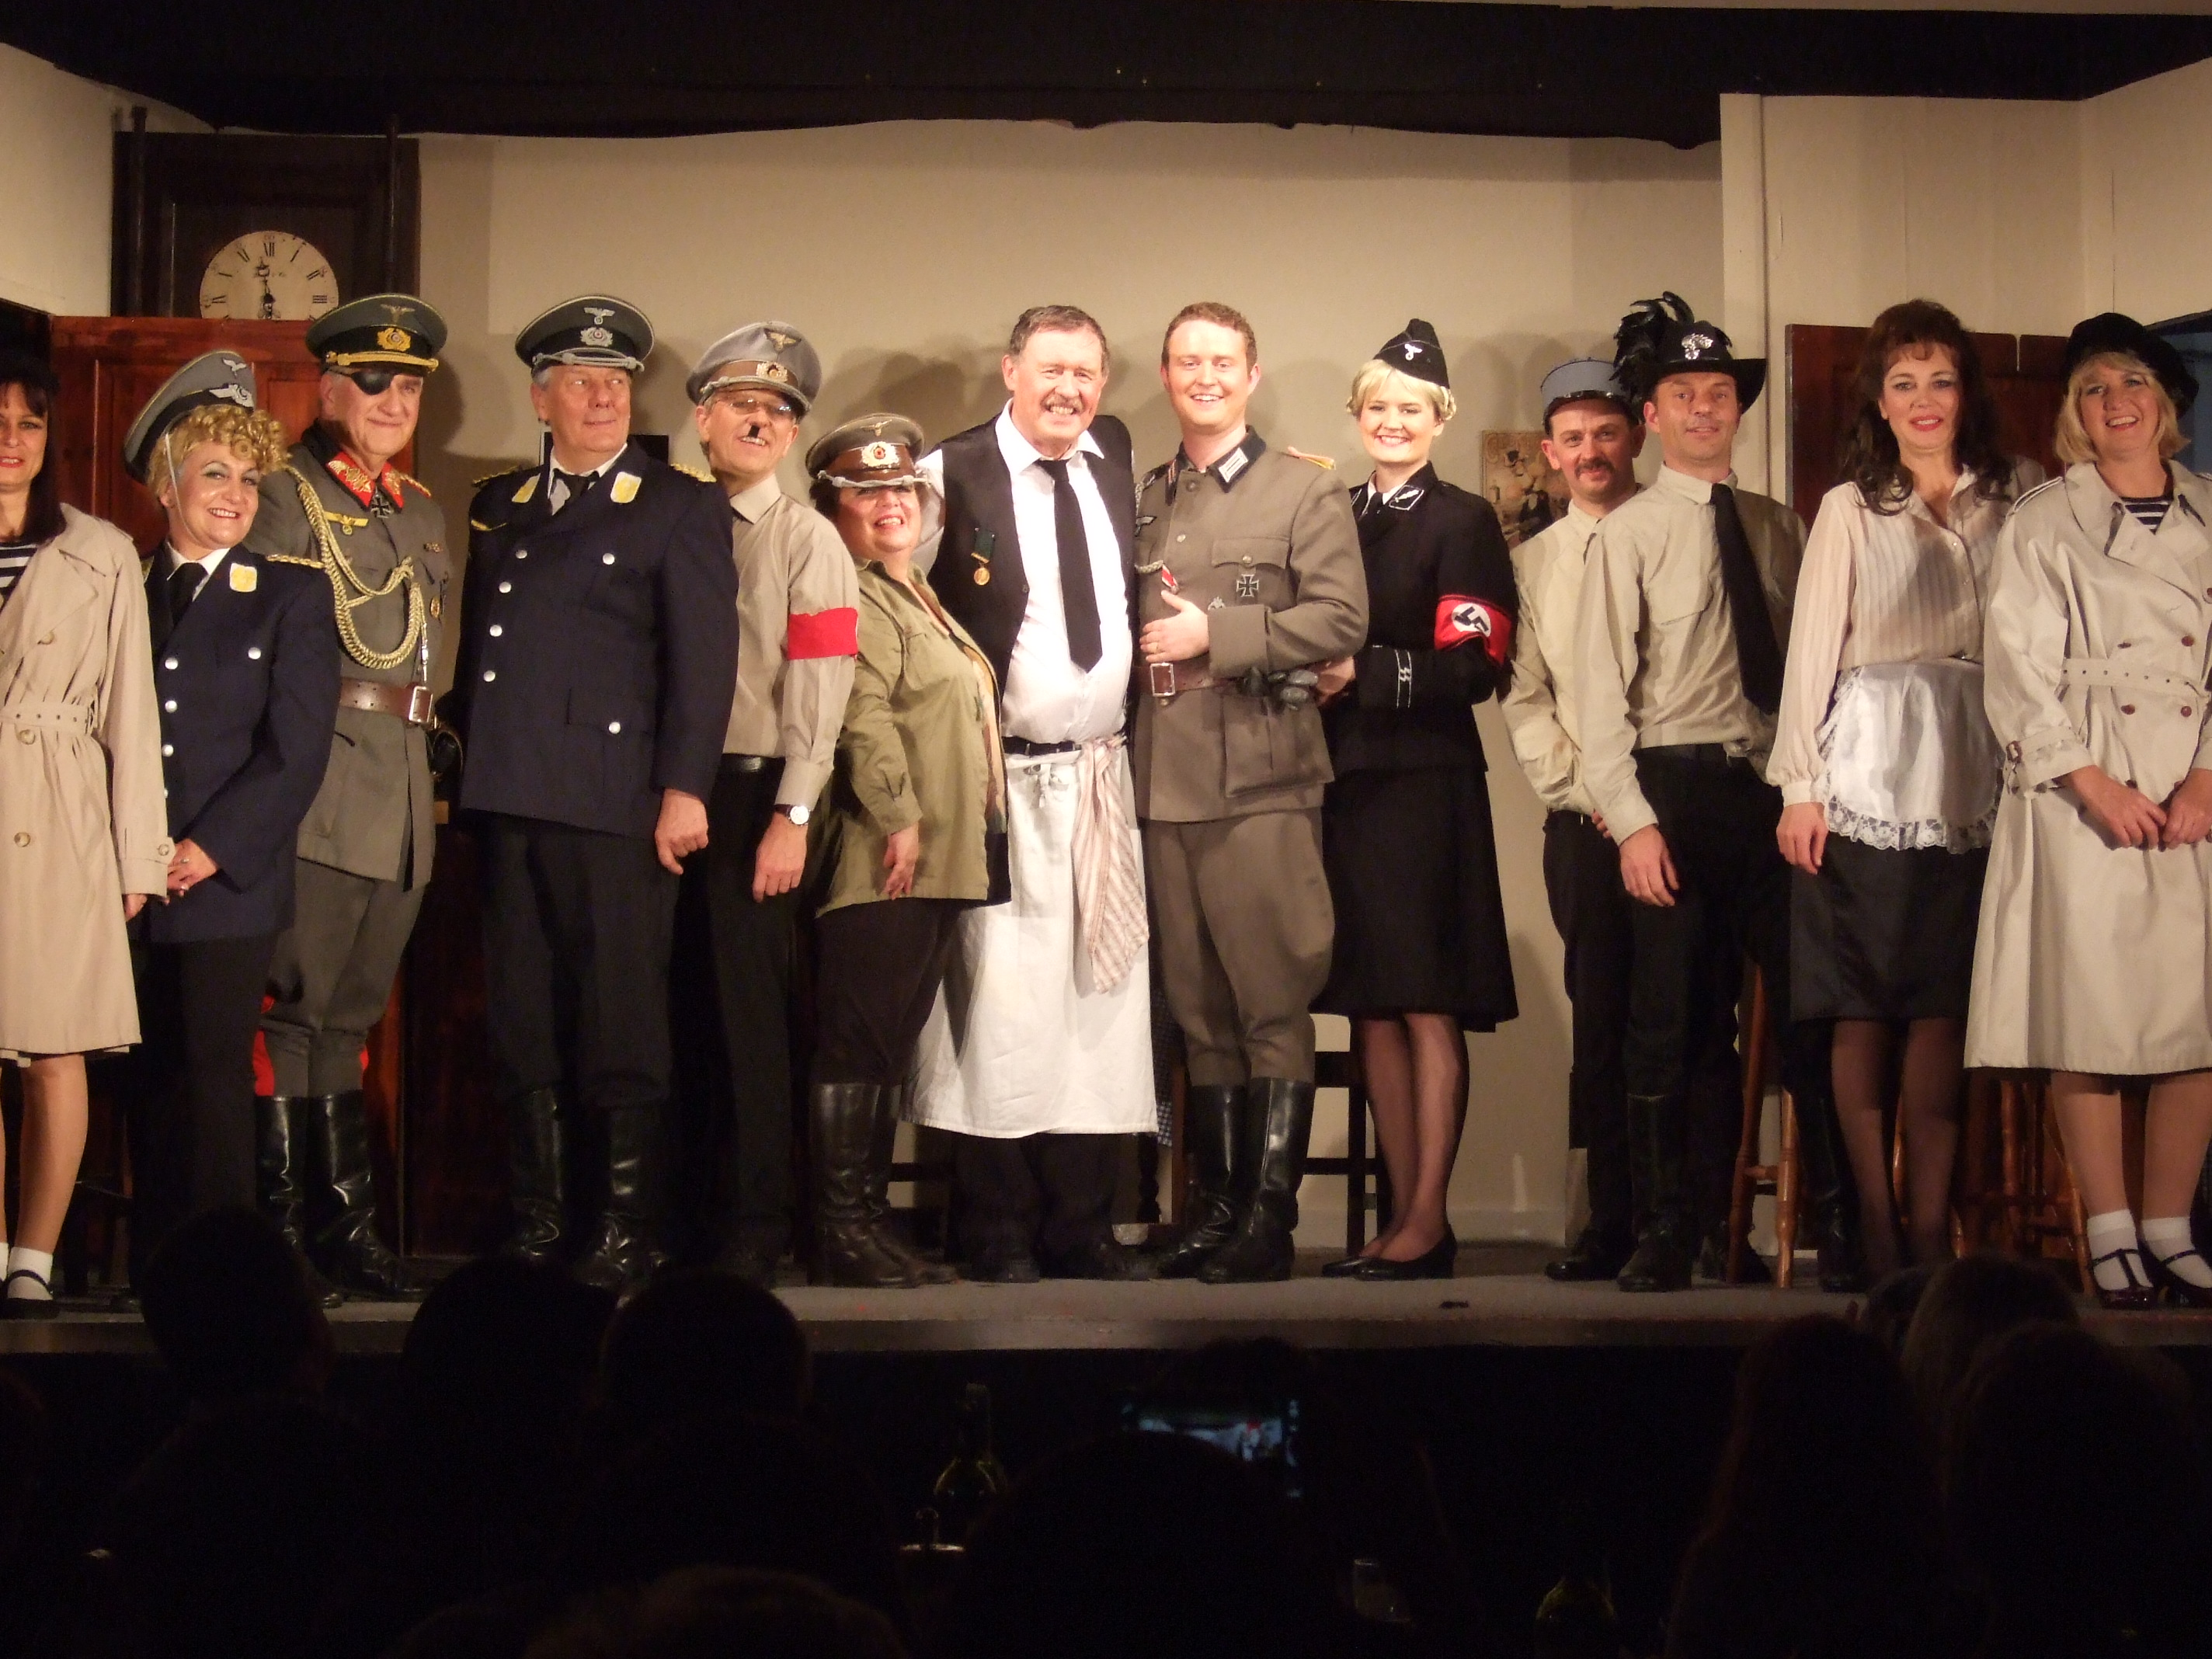 AA53 - Last Night - Cast Photo at Curtain Call (1)